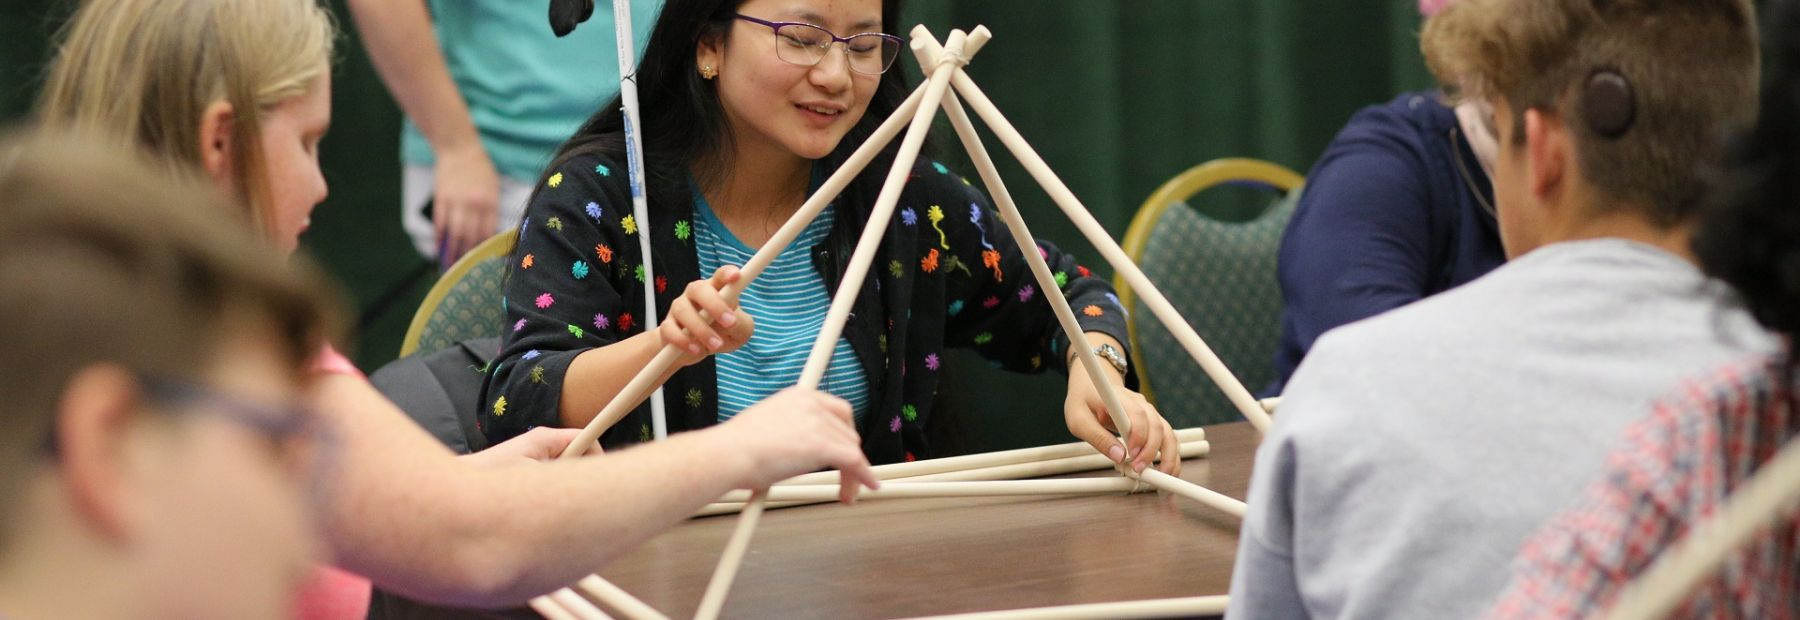 A girl builds a pyramid during an NFB STEM program for teens.